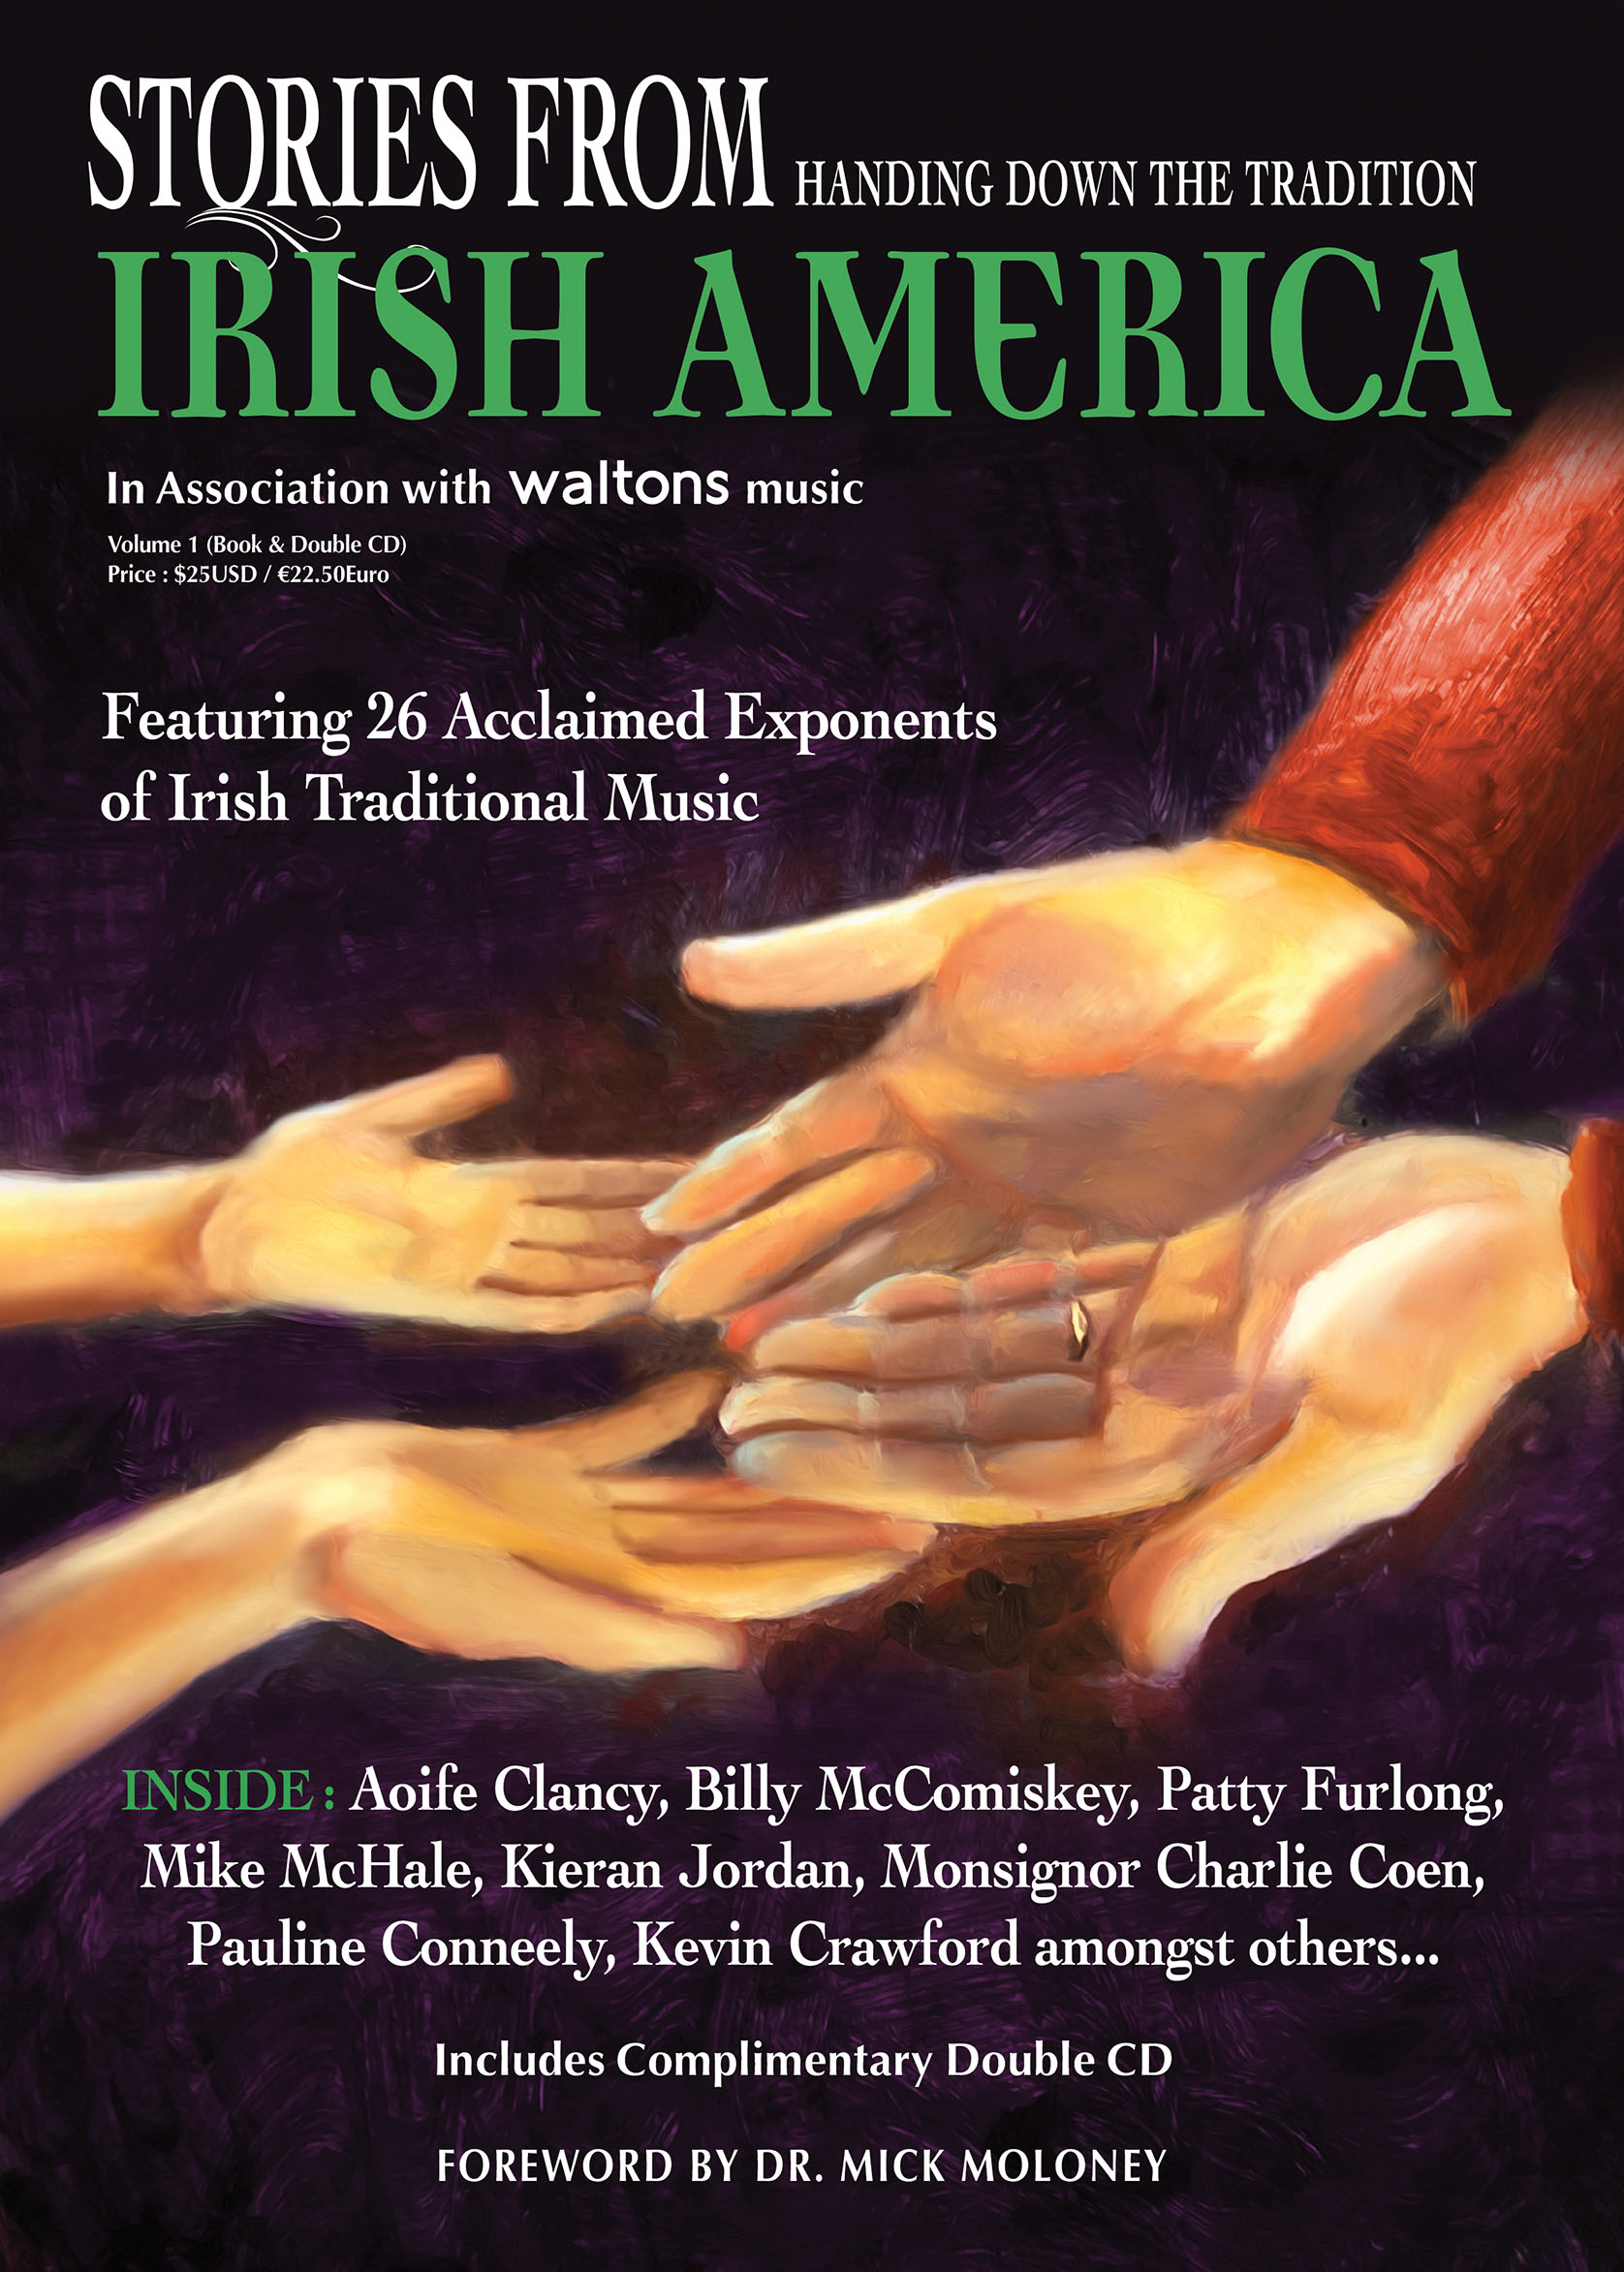 Stories from Irish America Volume 1 Book & Double CD Print Edition